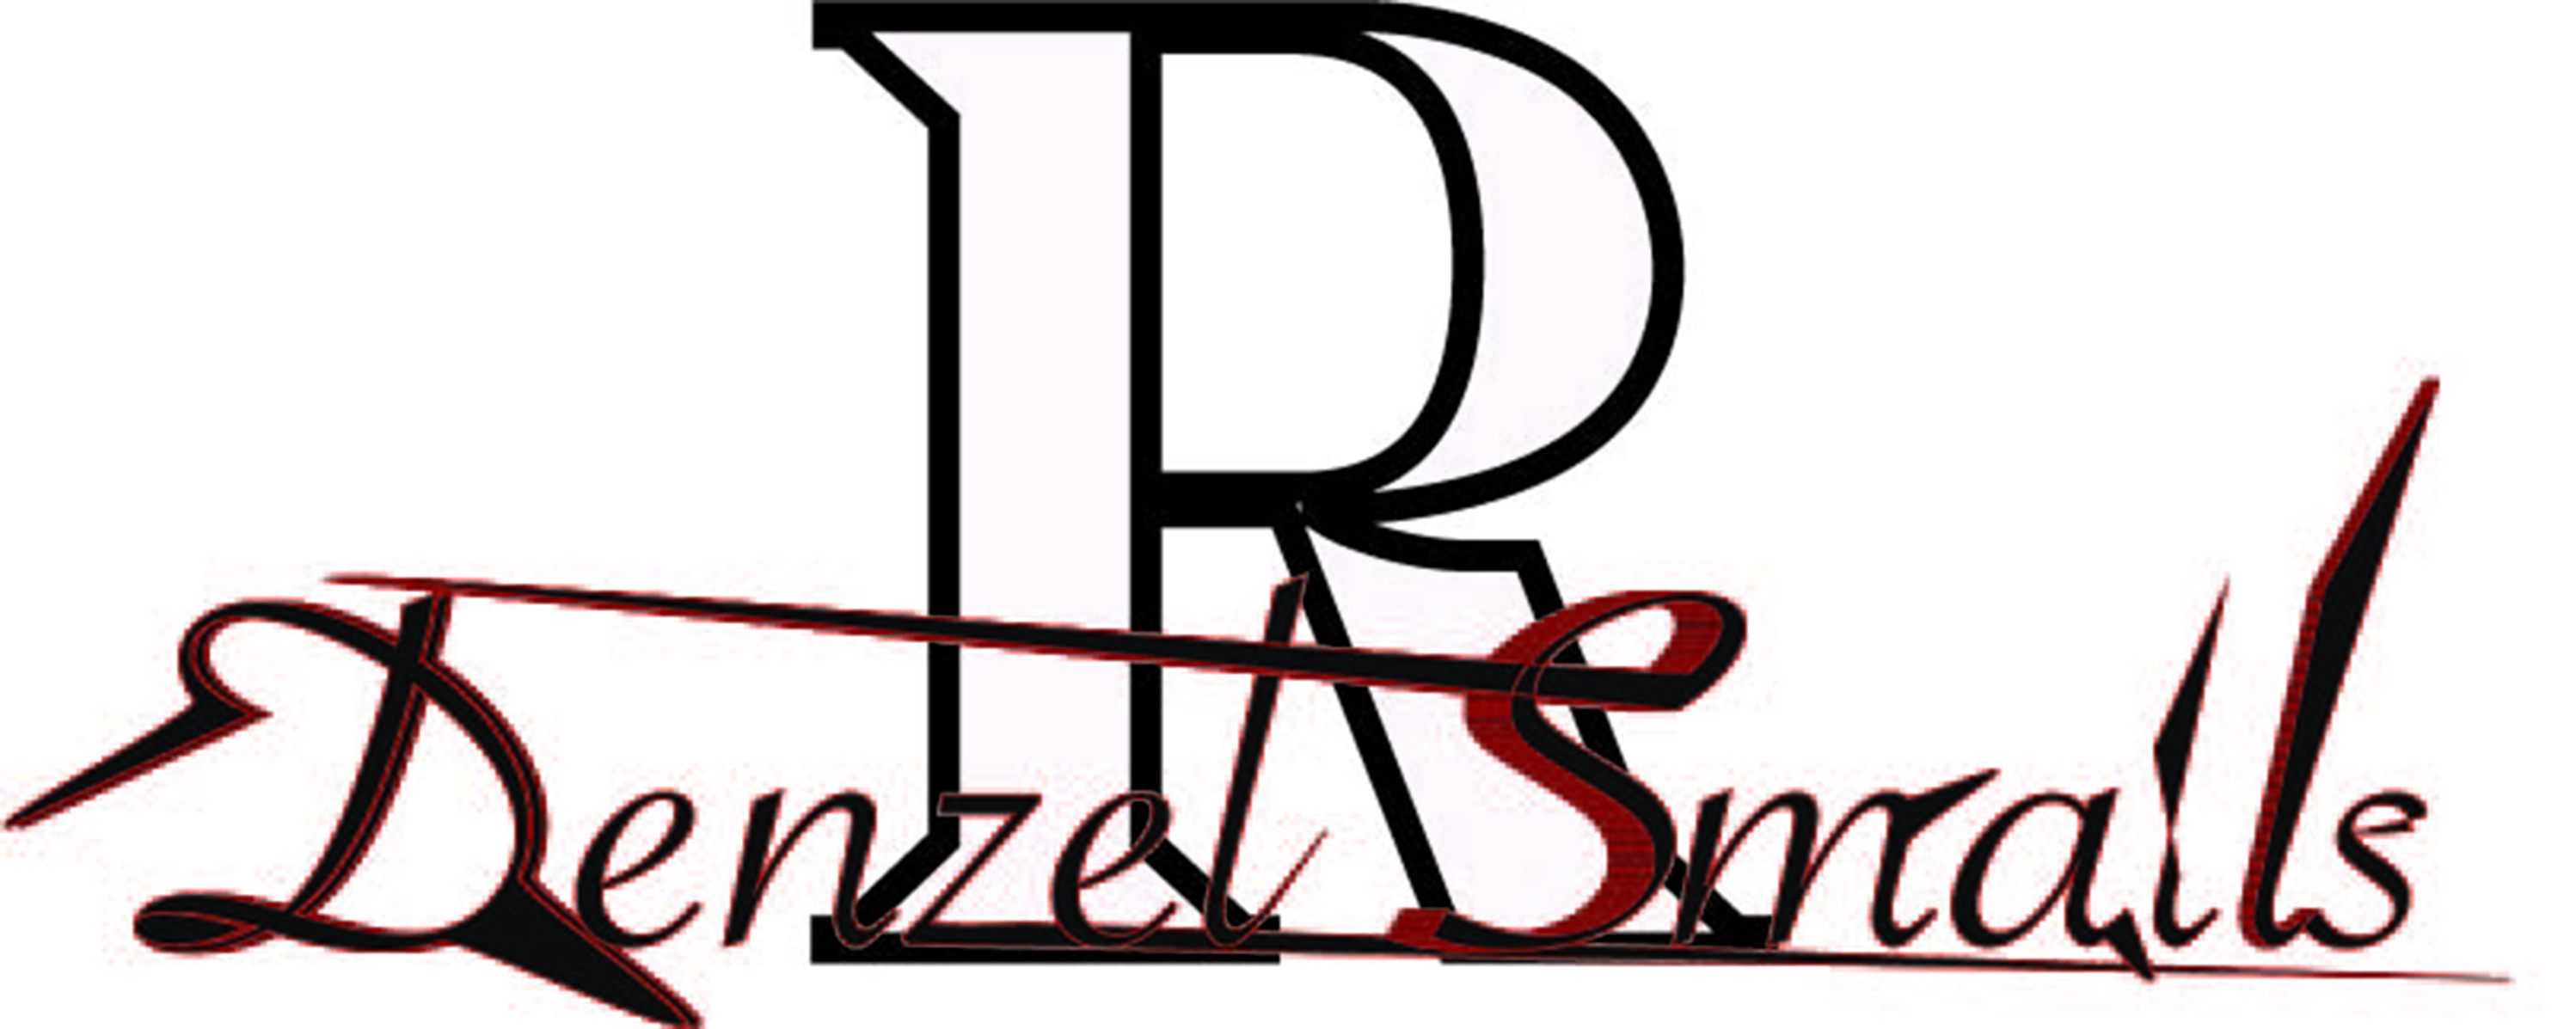 Denzel Smalls Signature